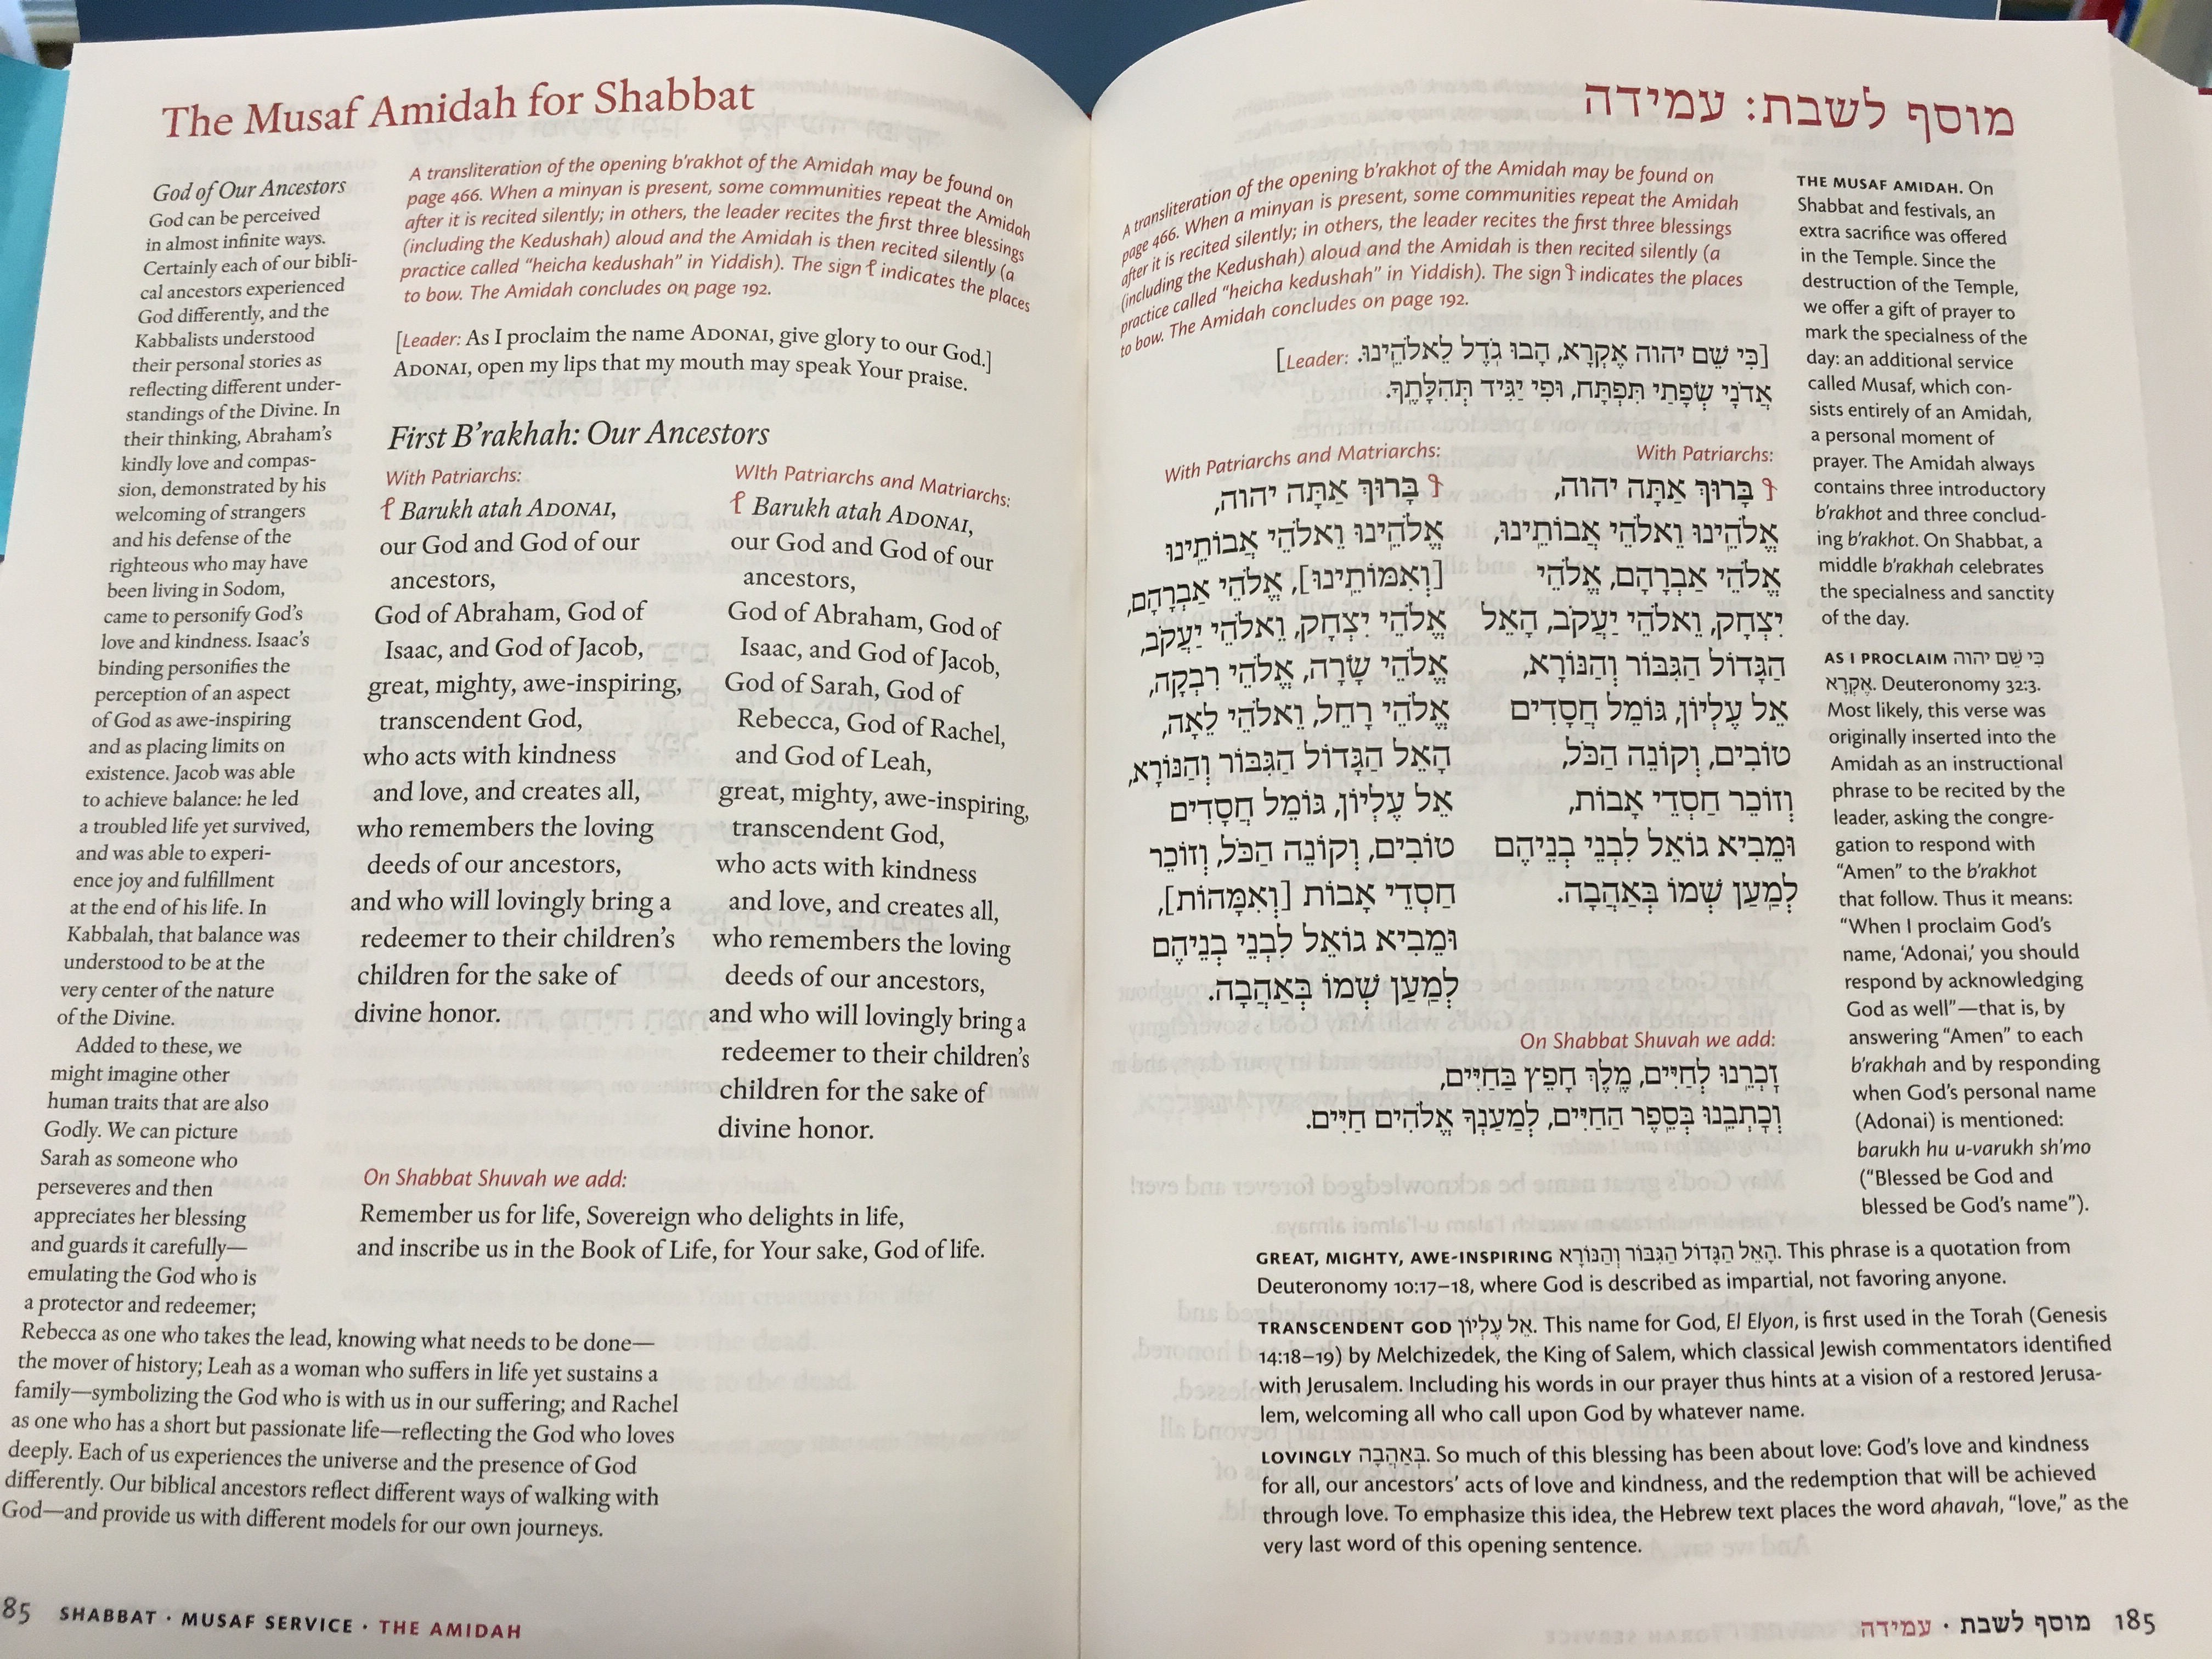 siddur | Two Rabbis, One Voice, Three Opinions